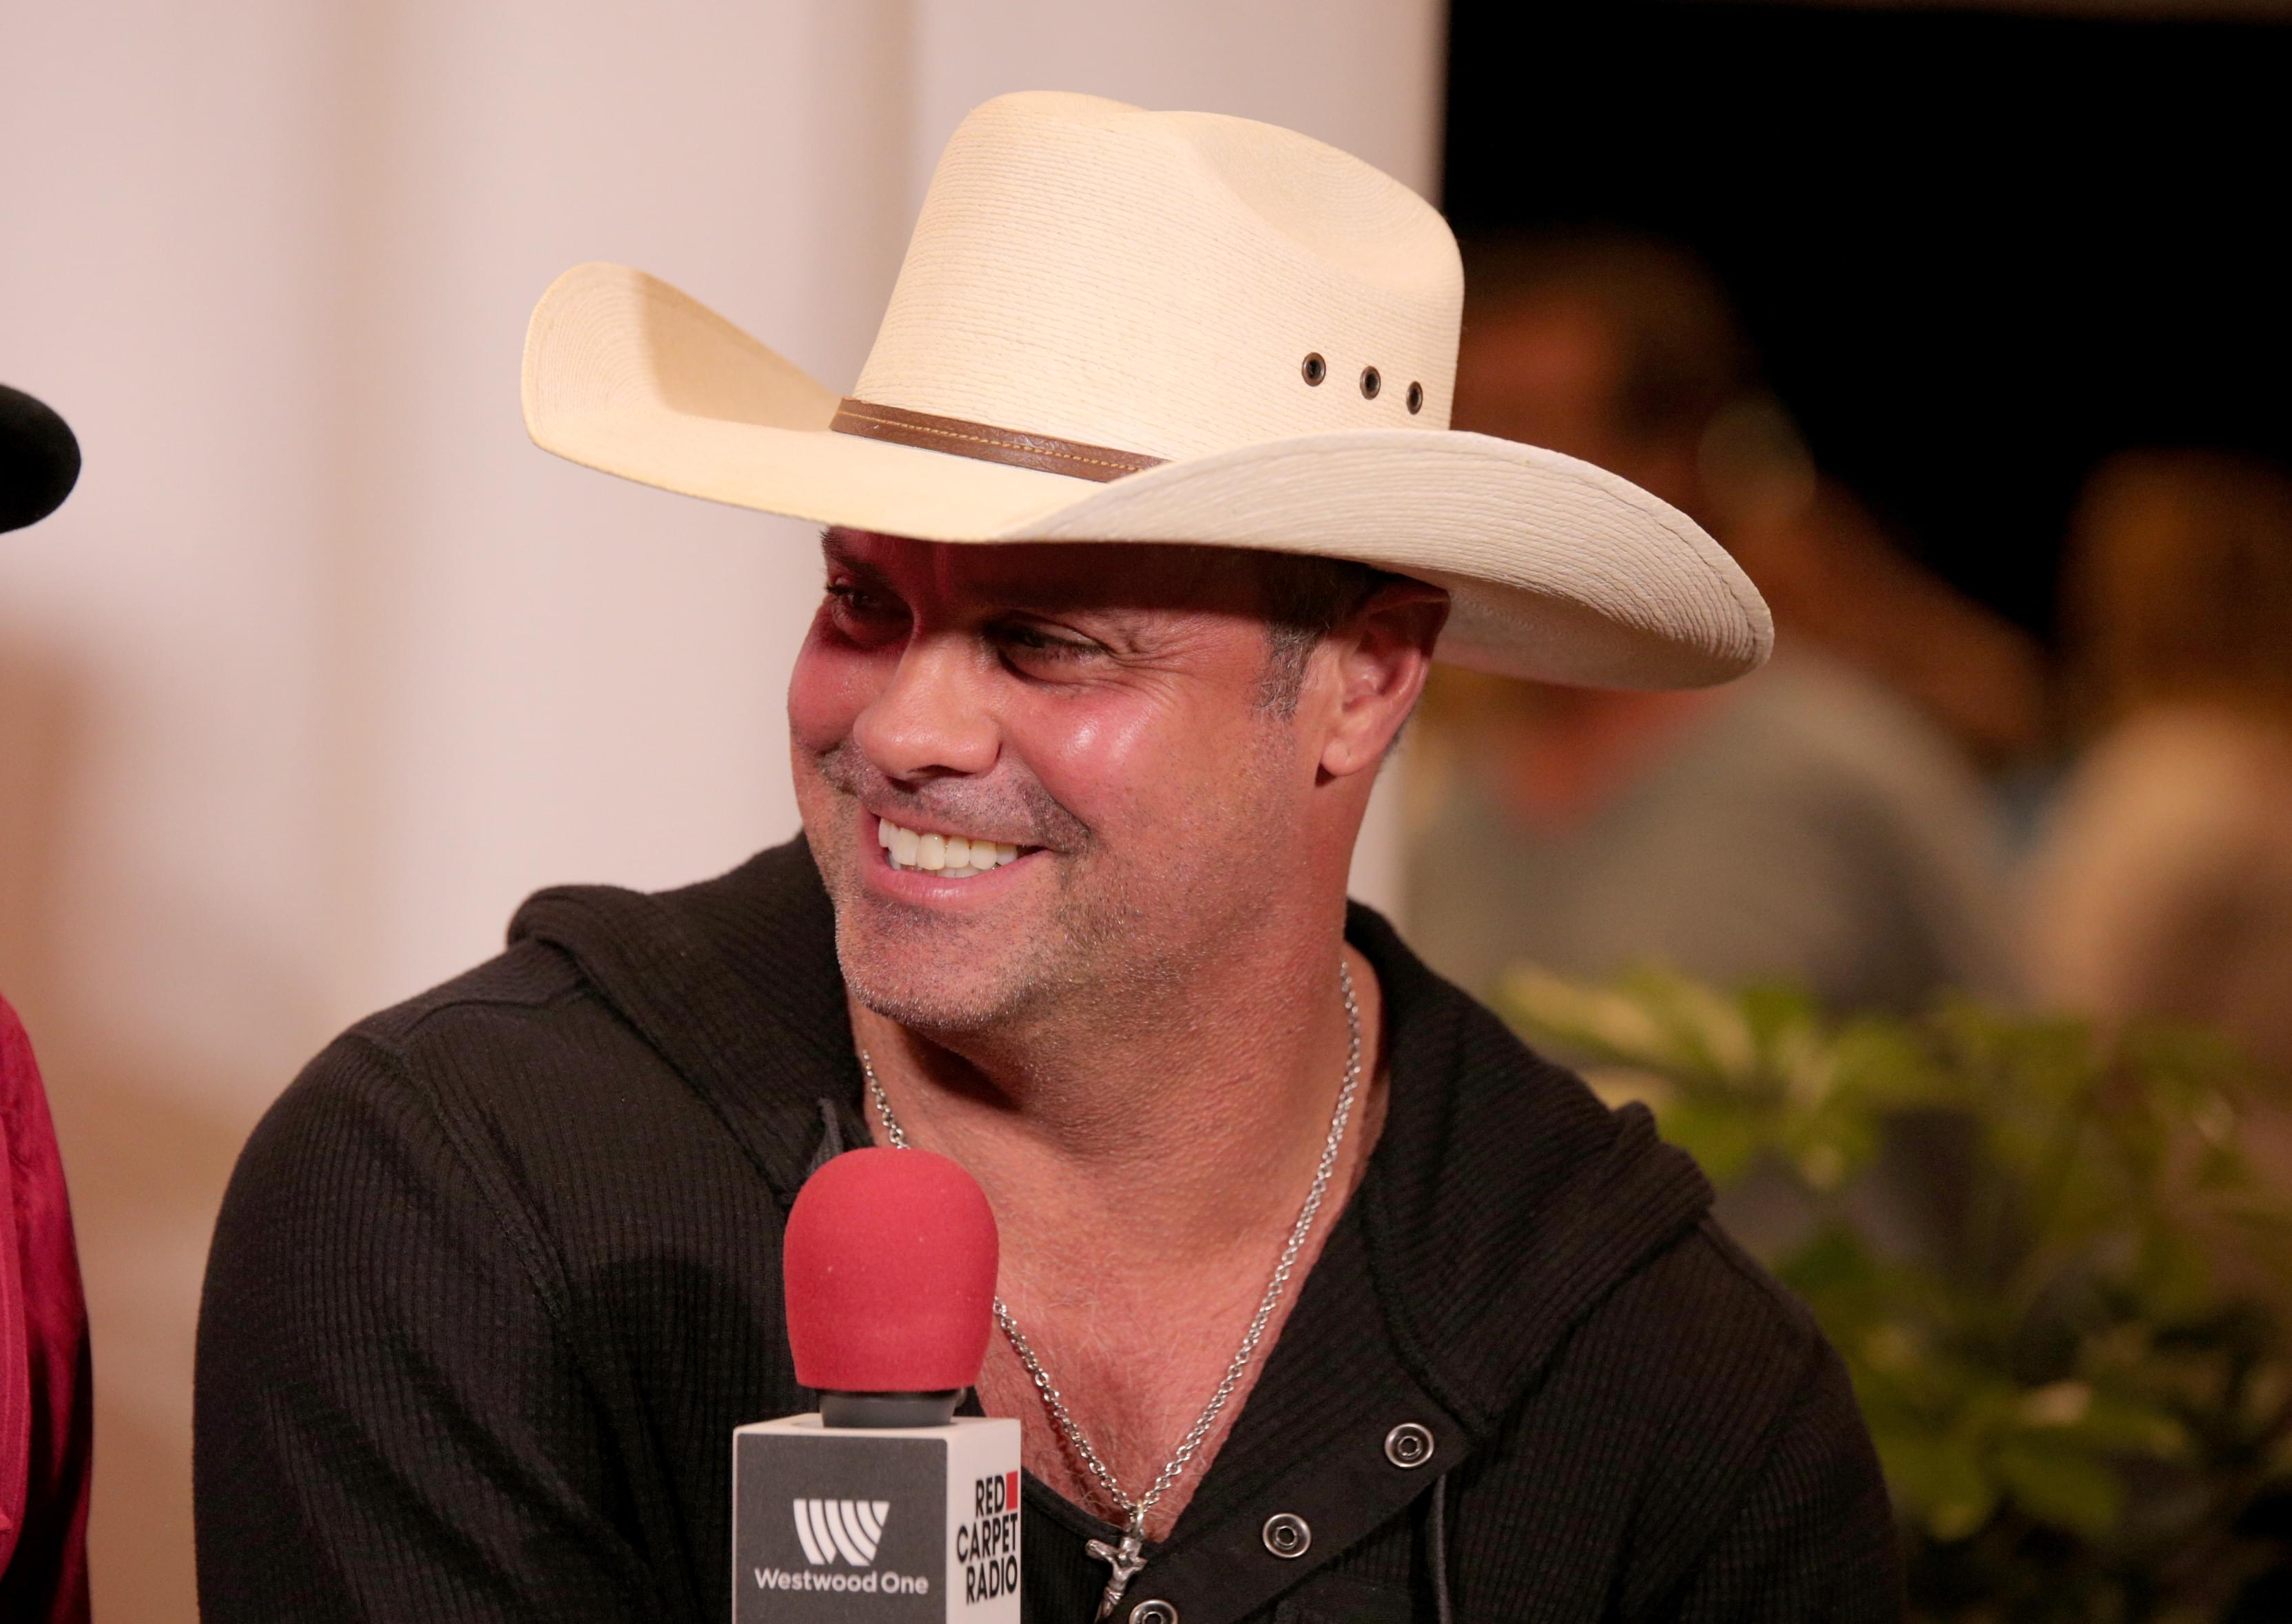 Troy Gentry's Wife Wants To Meet The Person Who Received This Organ From Him